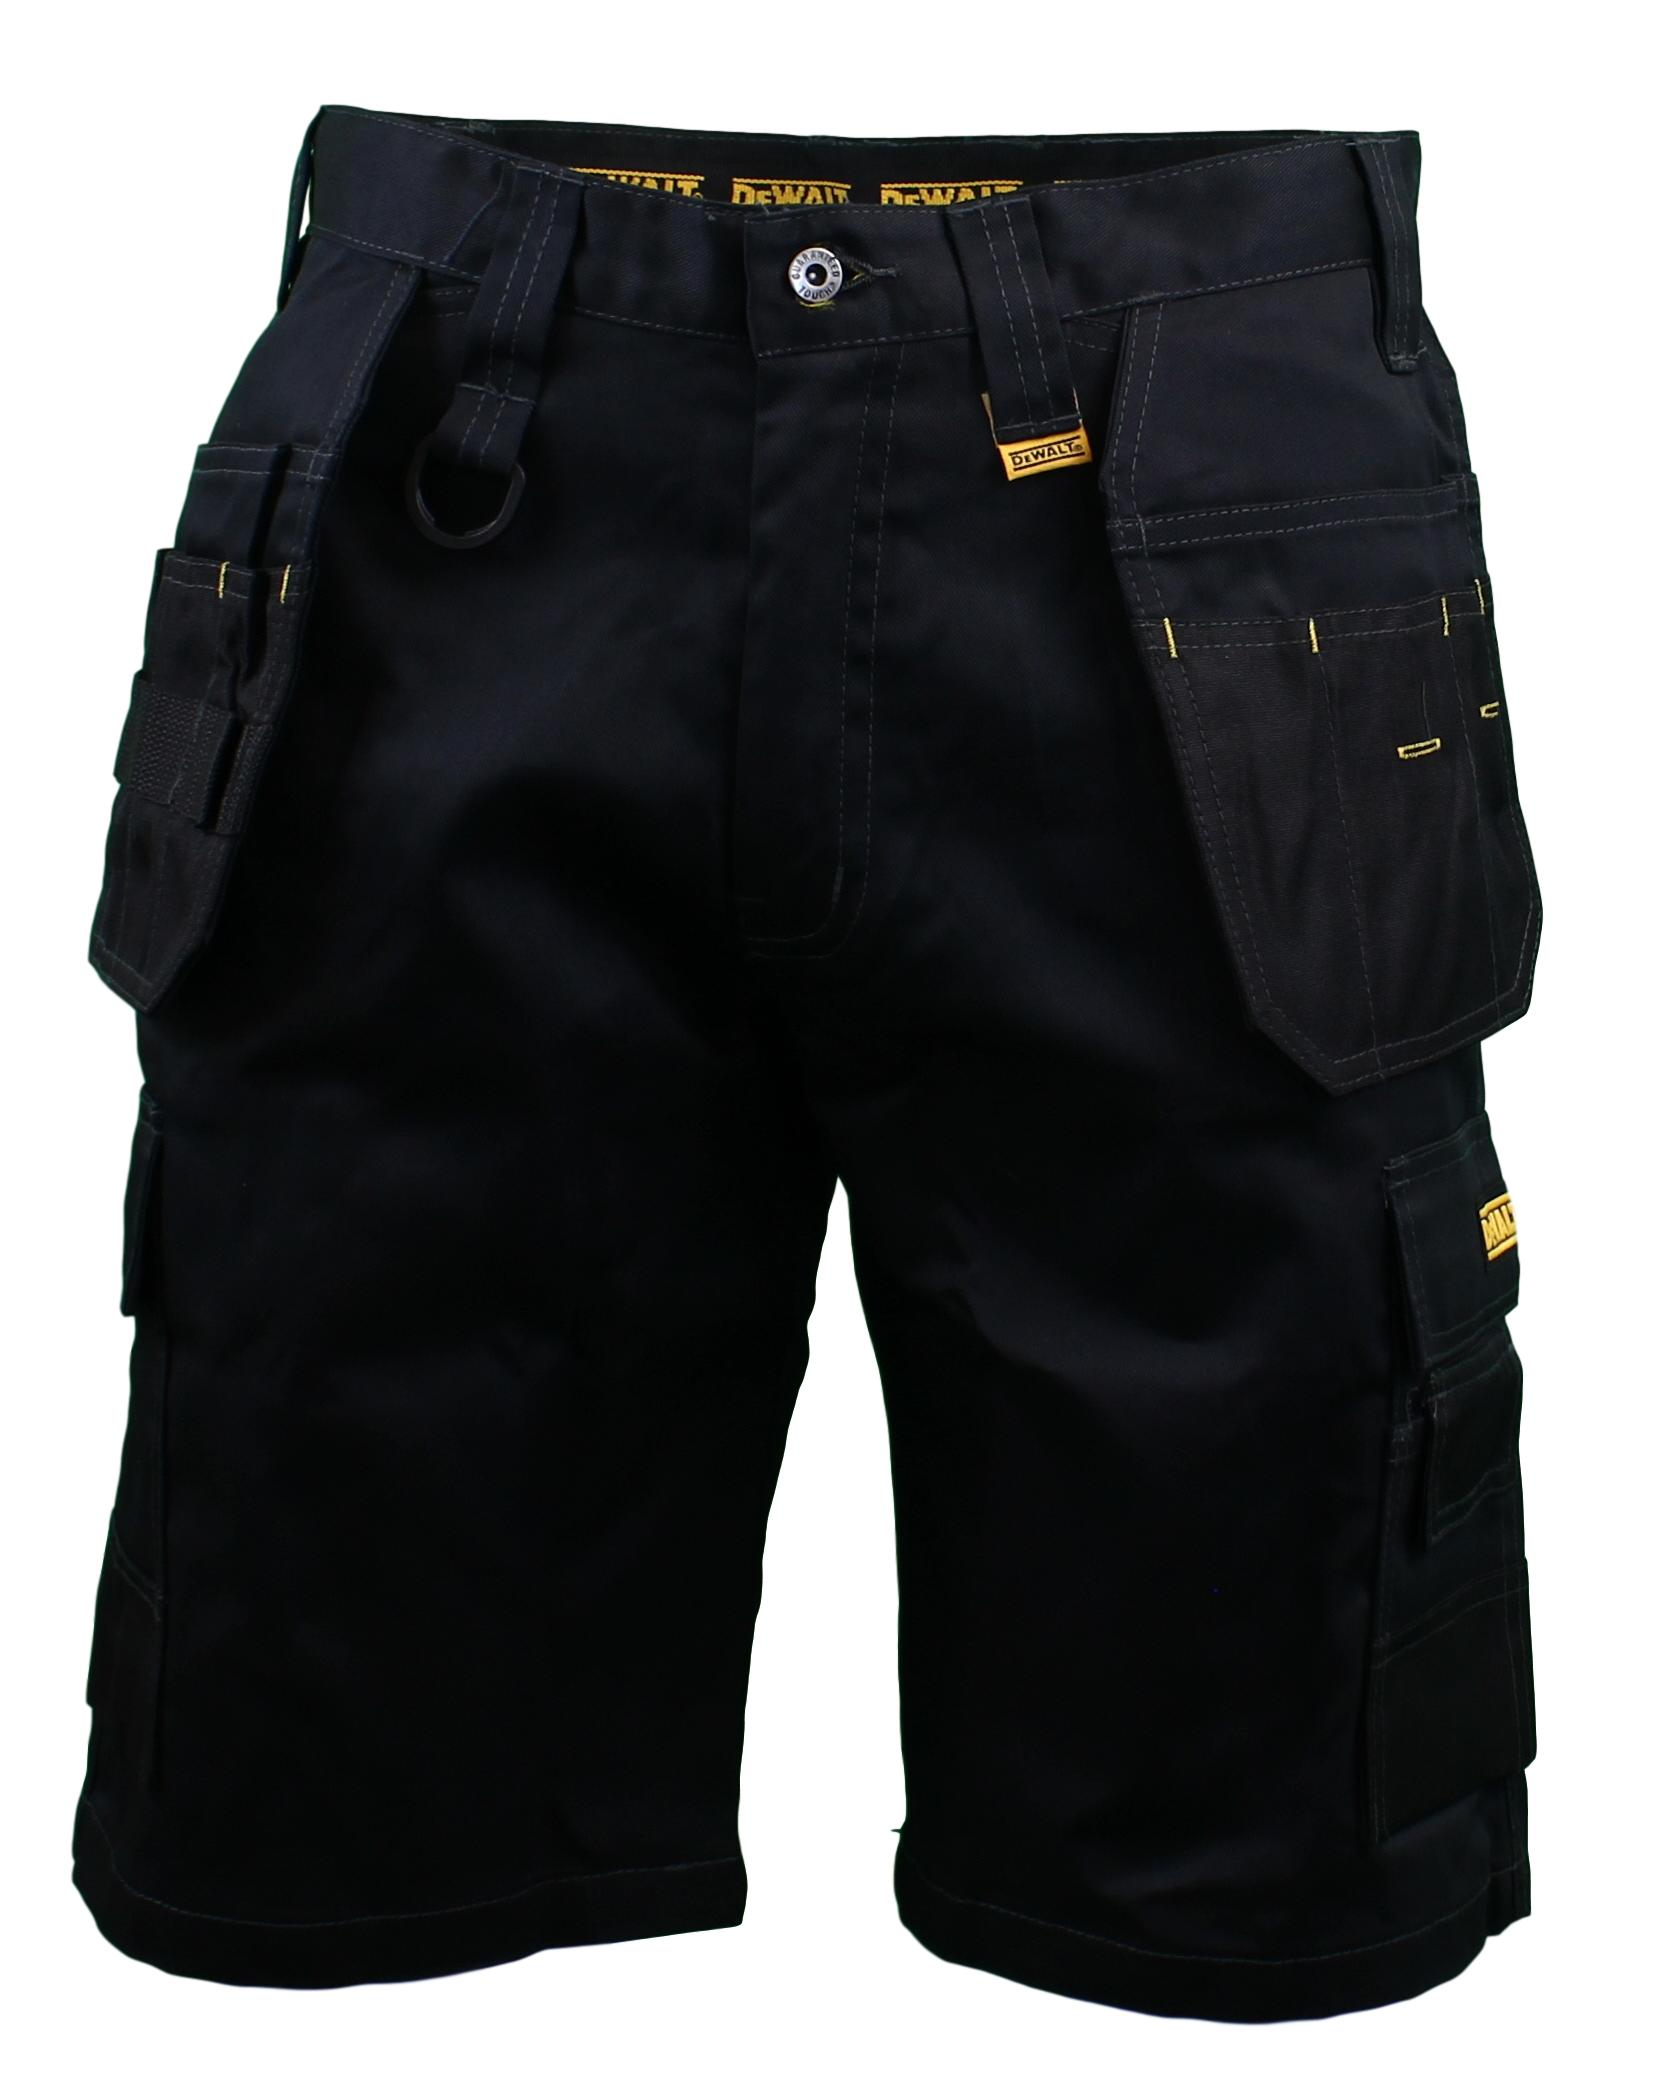 Clearance sale incredible prices full range of specifications Details about DeWalt Mens Black Utilty Pocket Cargo Work Shorts